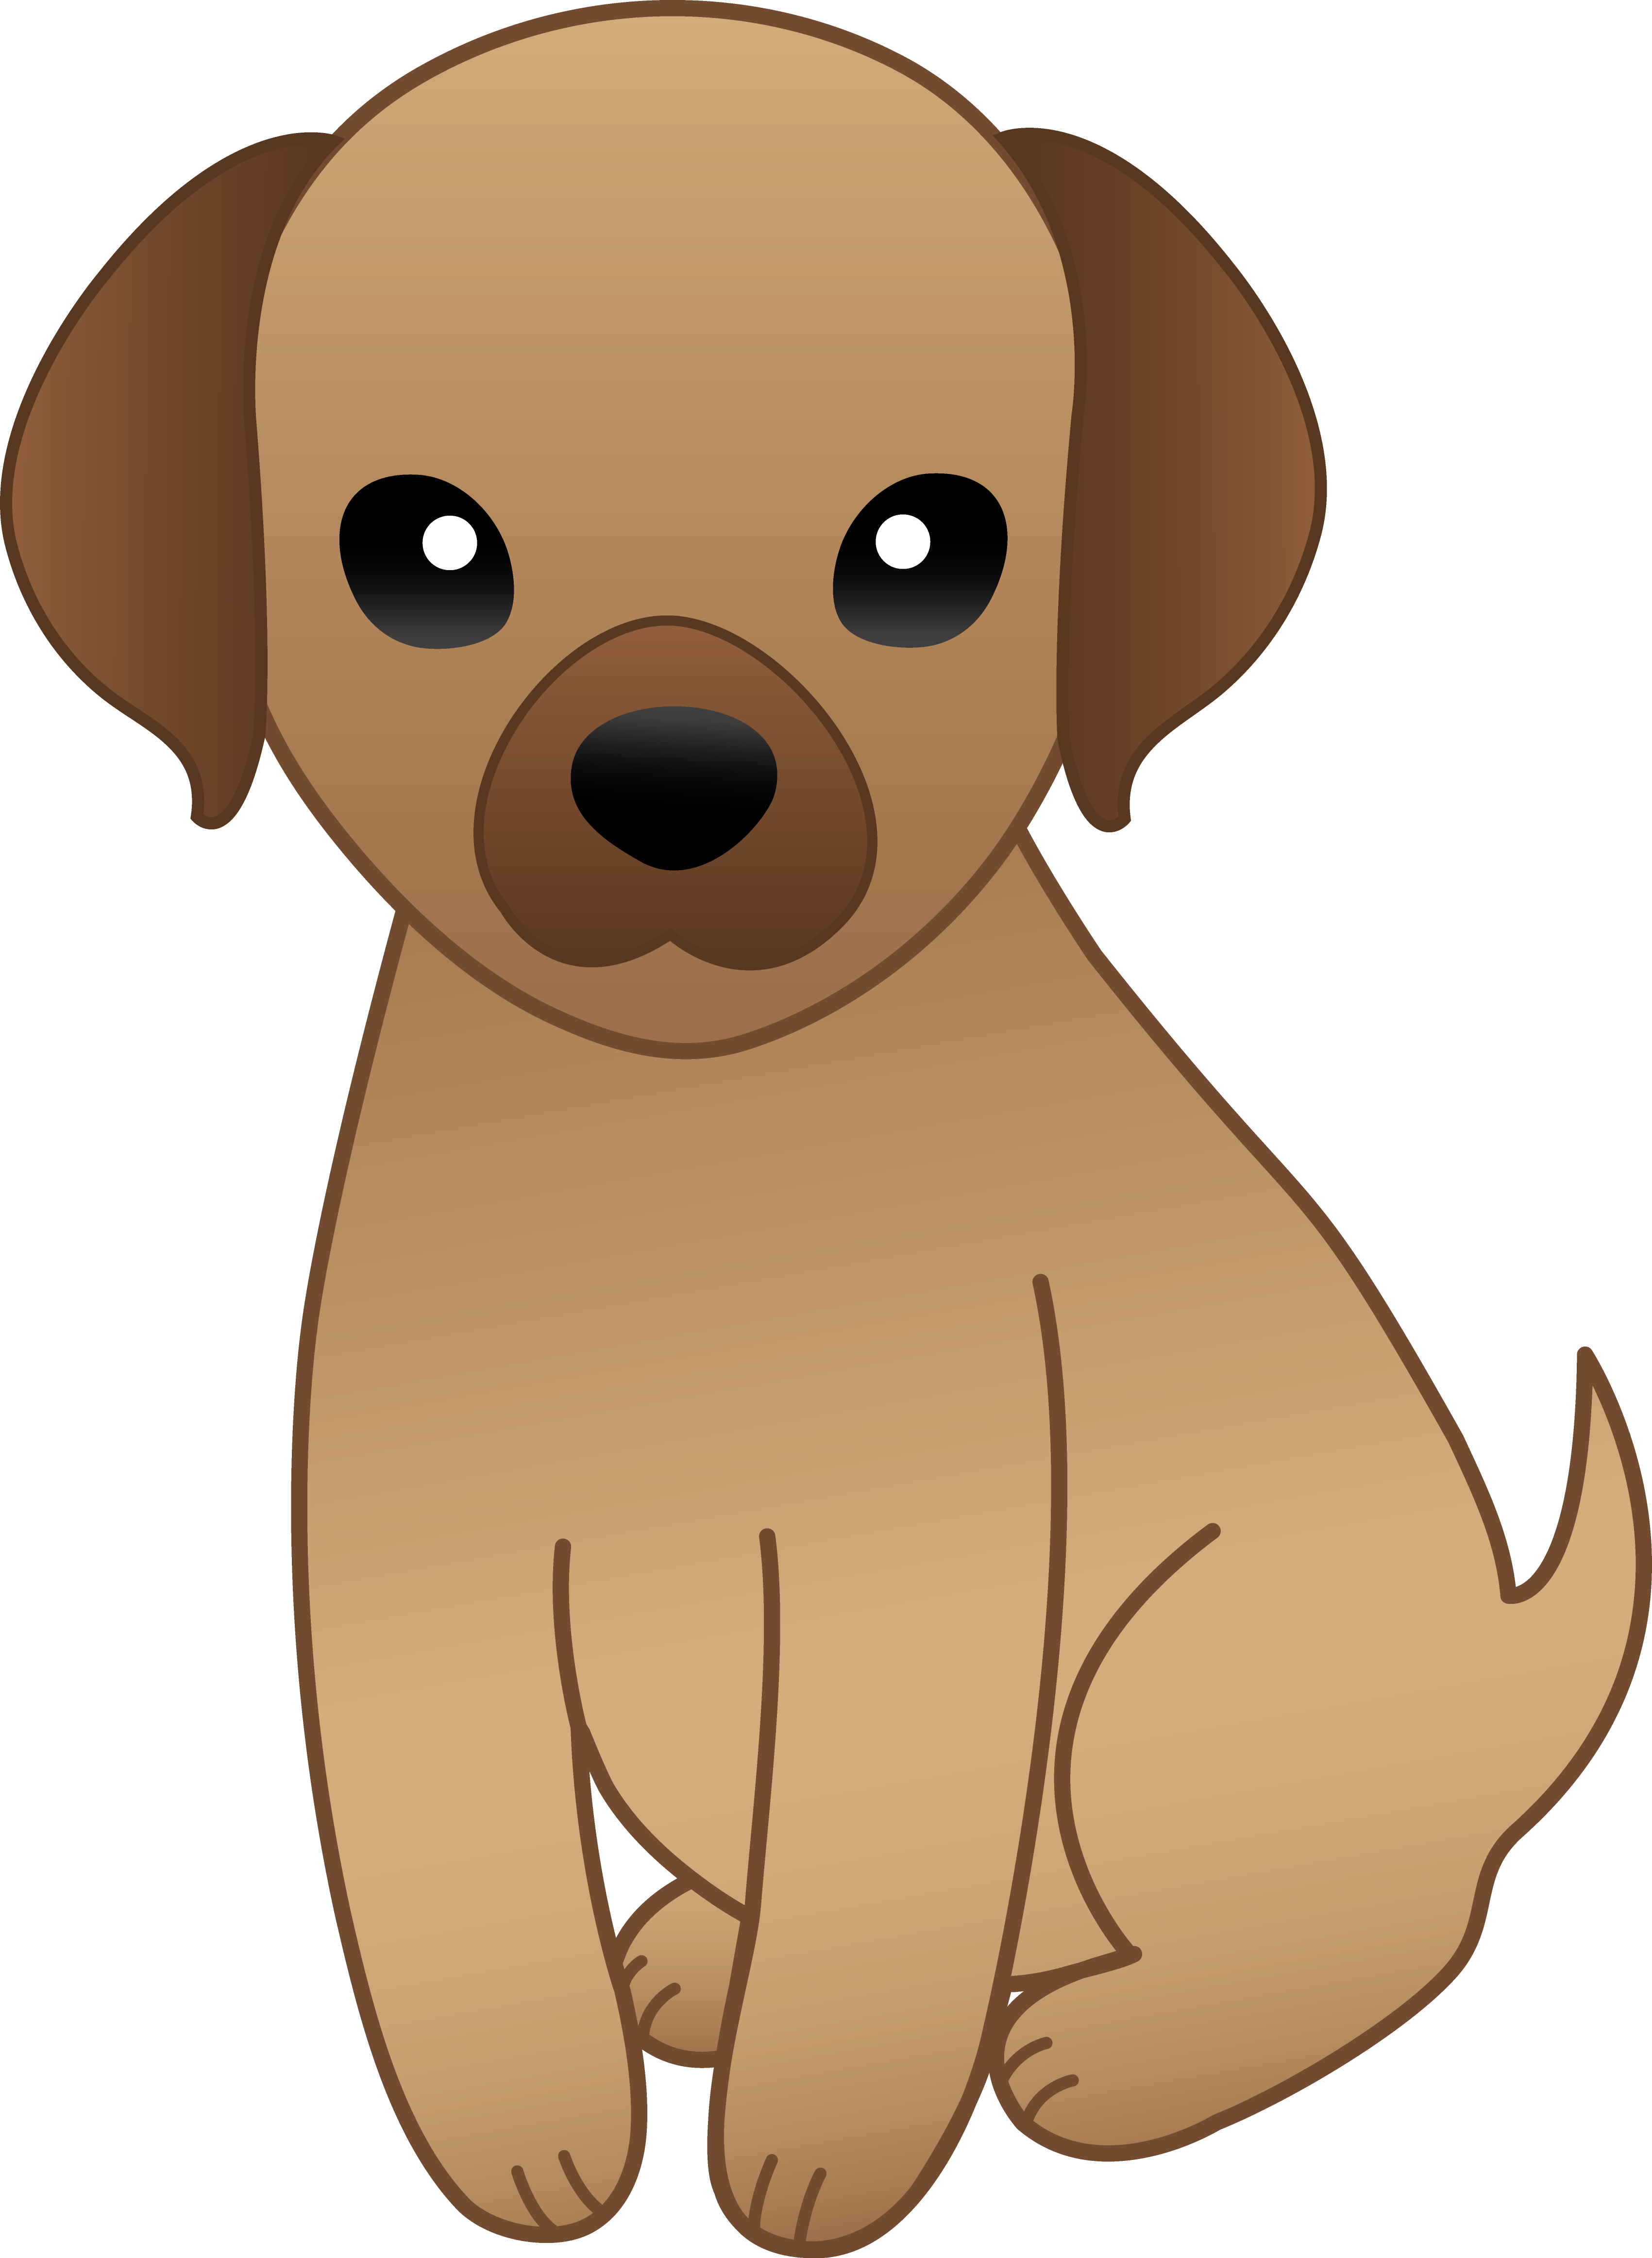 Free hd anime clipart - Animated Dog PNG HD - Animated Dog PNG